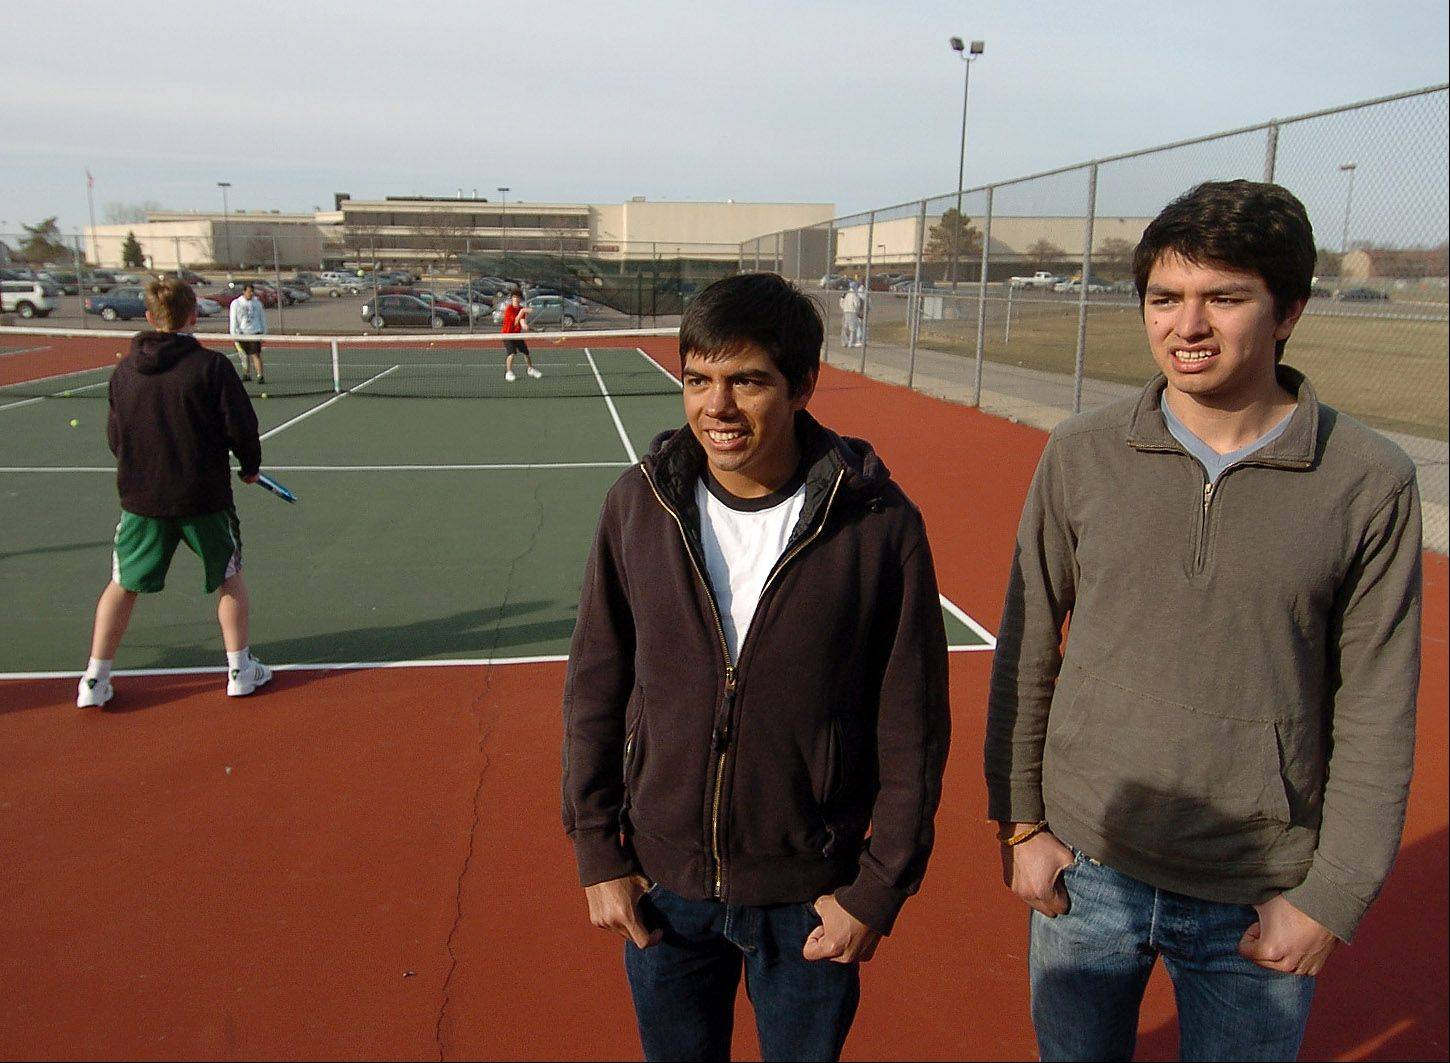 Rafael and Carlos Robles visit the Palatine tennis courts.